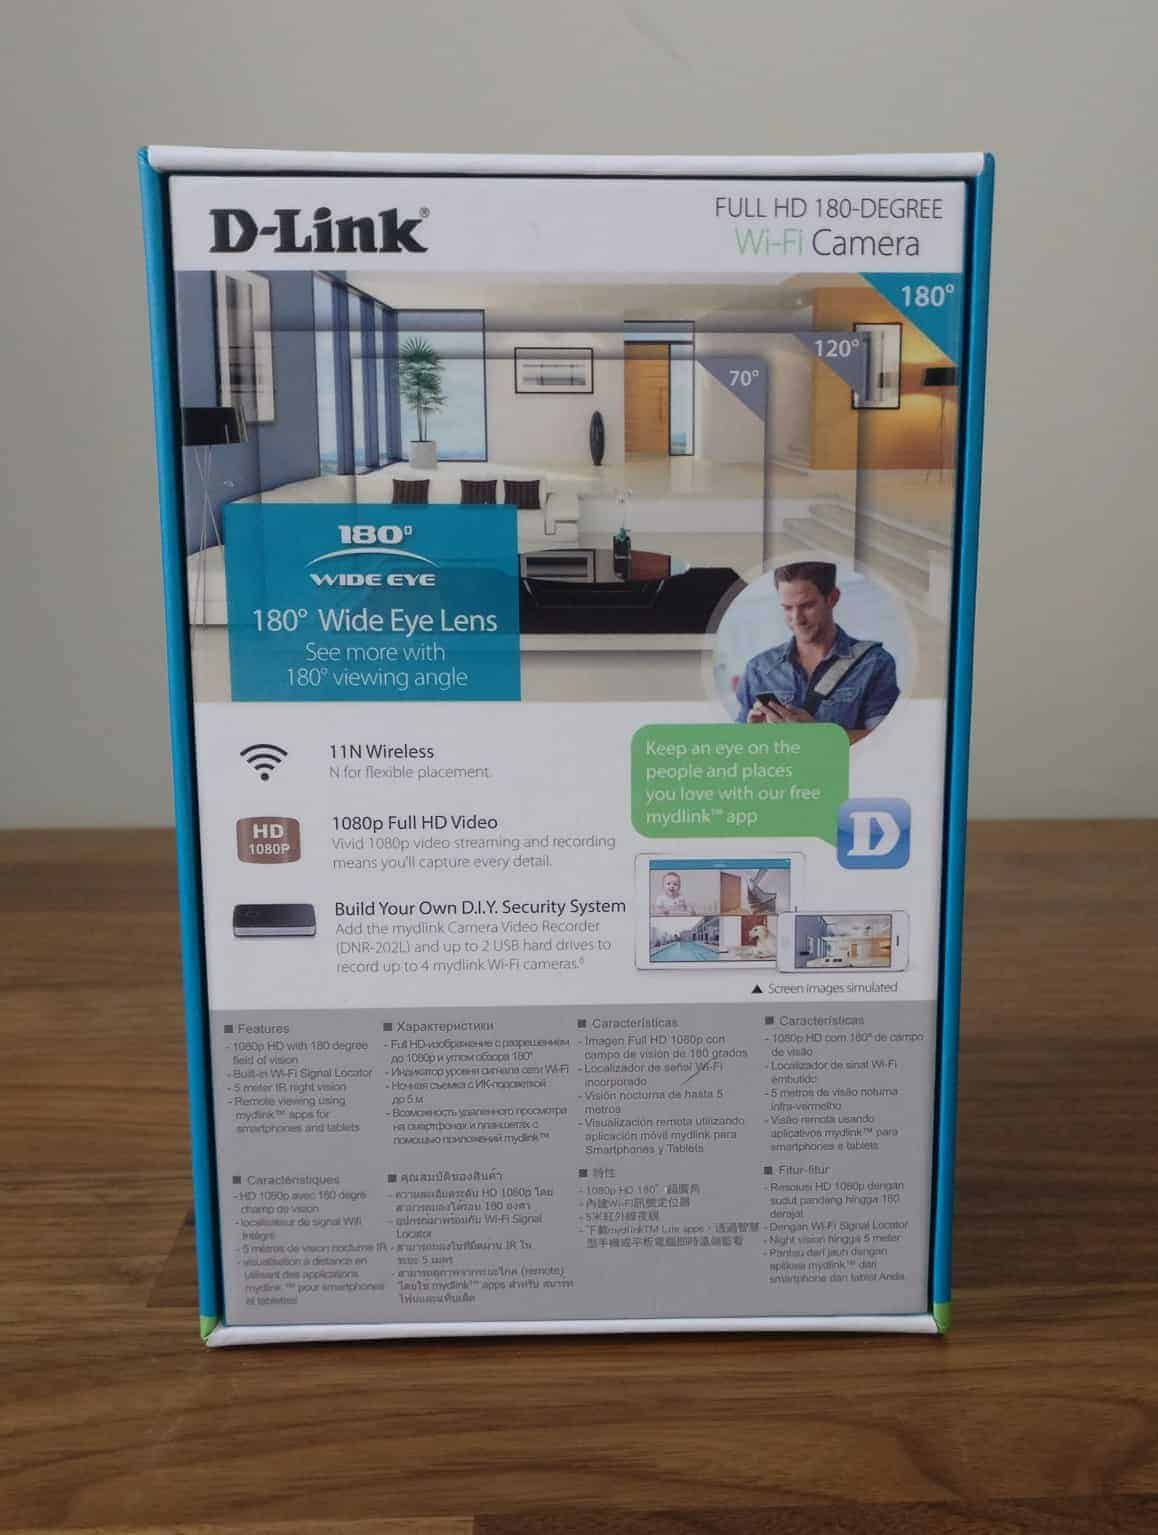 D-Link DCS-2530L WiFi Camera Review - The Streaming Blog